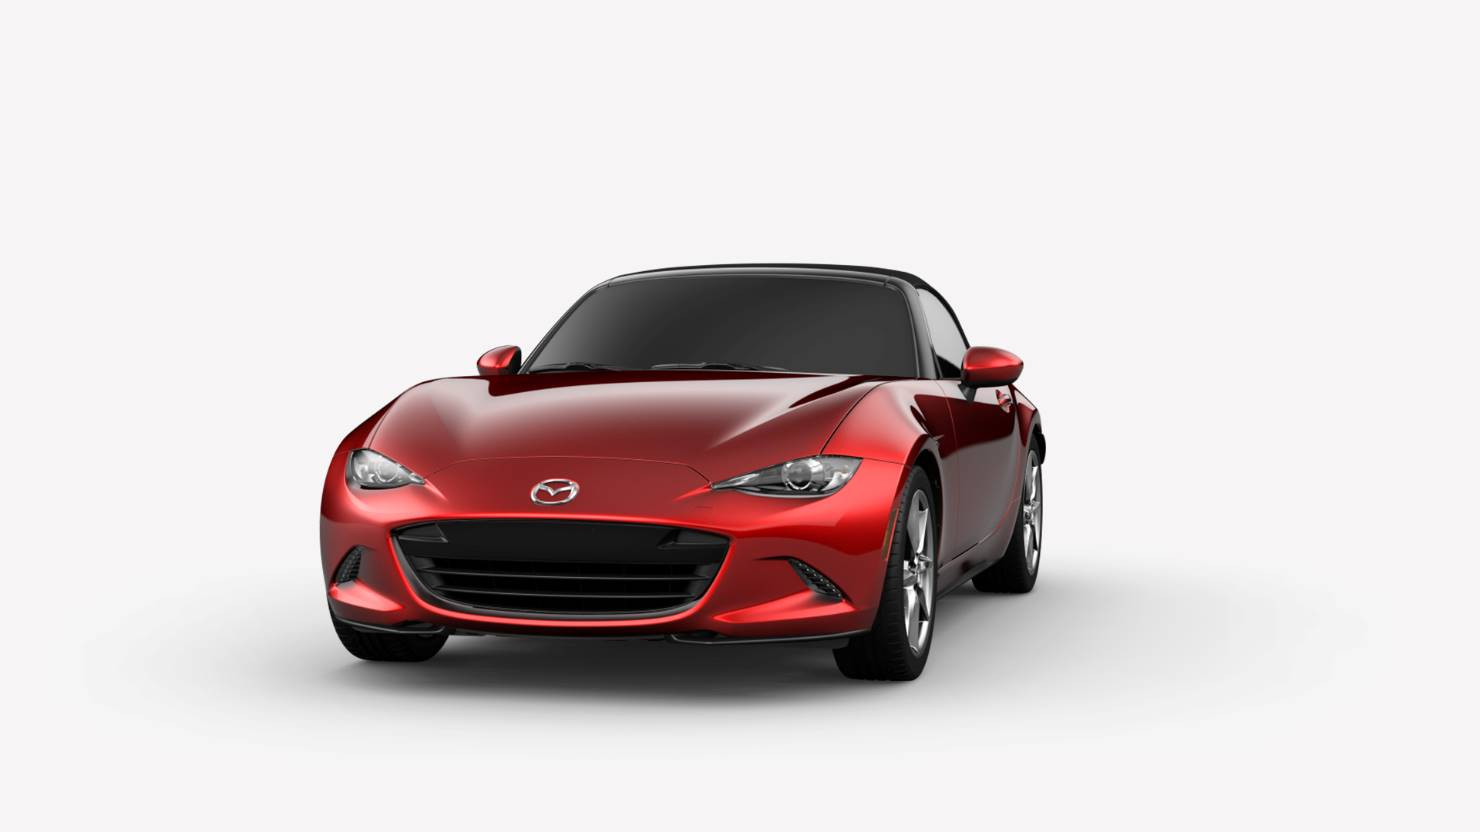 2019 Mazda MX-5 Miata Soul Red Crystal Metallic